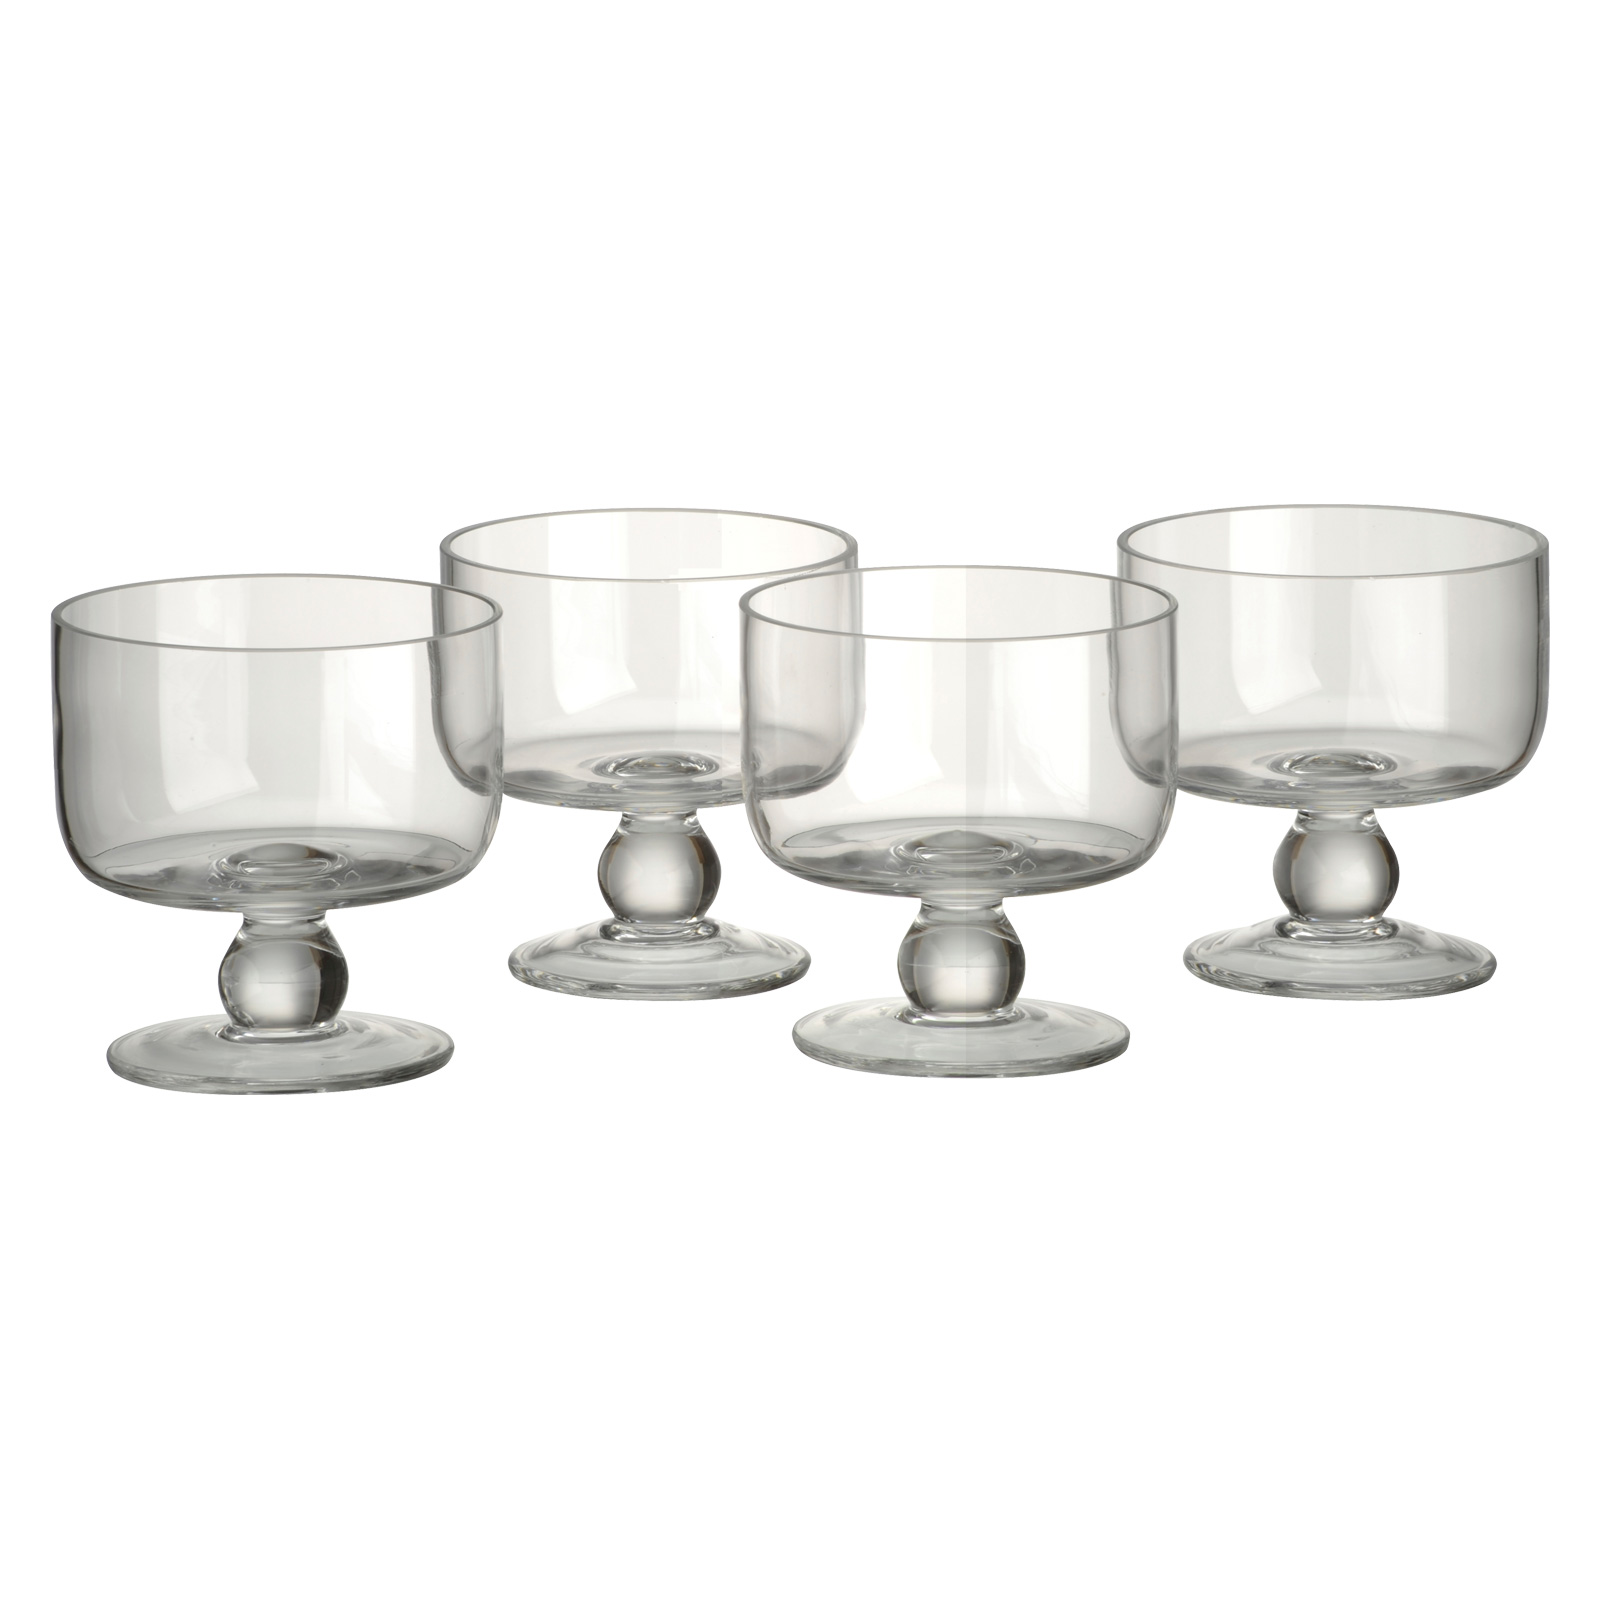 Set of 4 Simplicity Individual Trifle Bowls by Artland